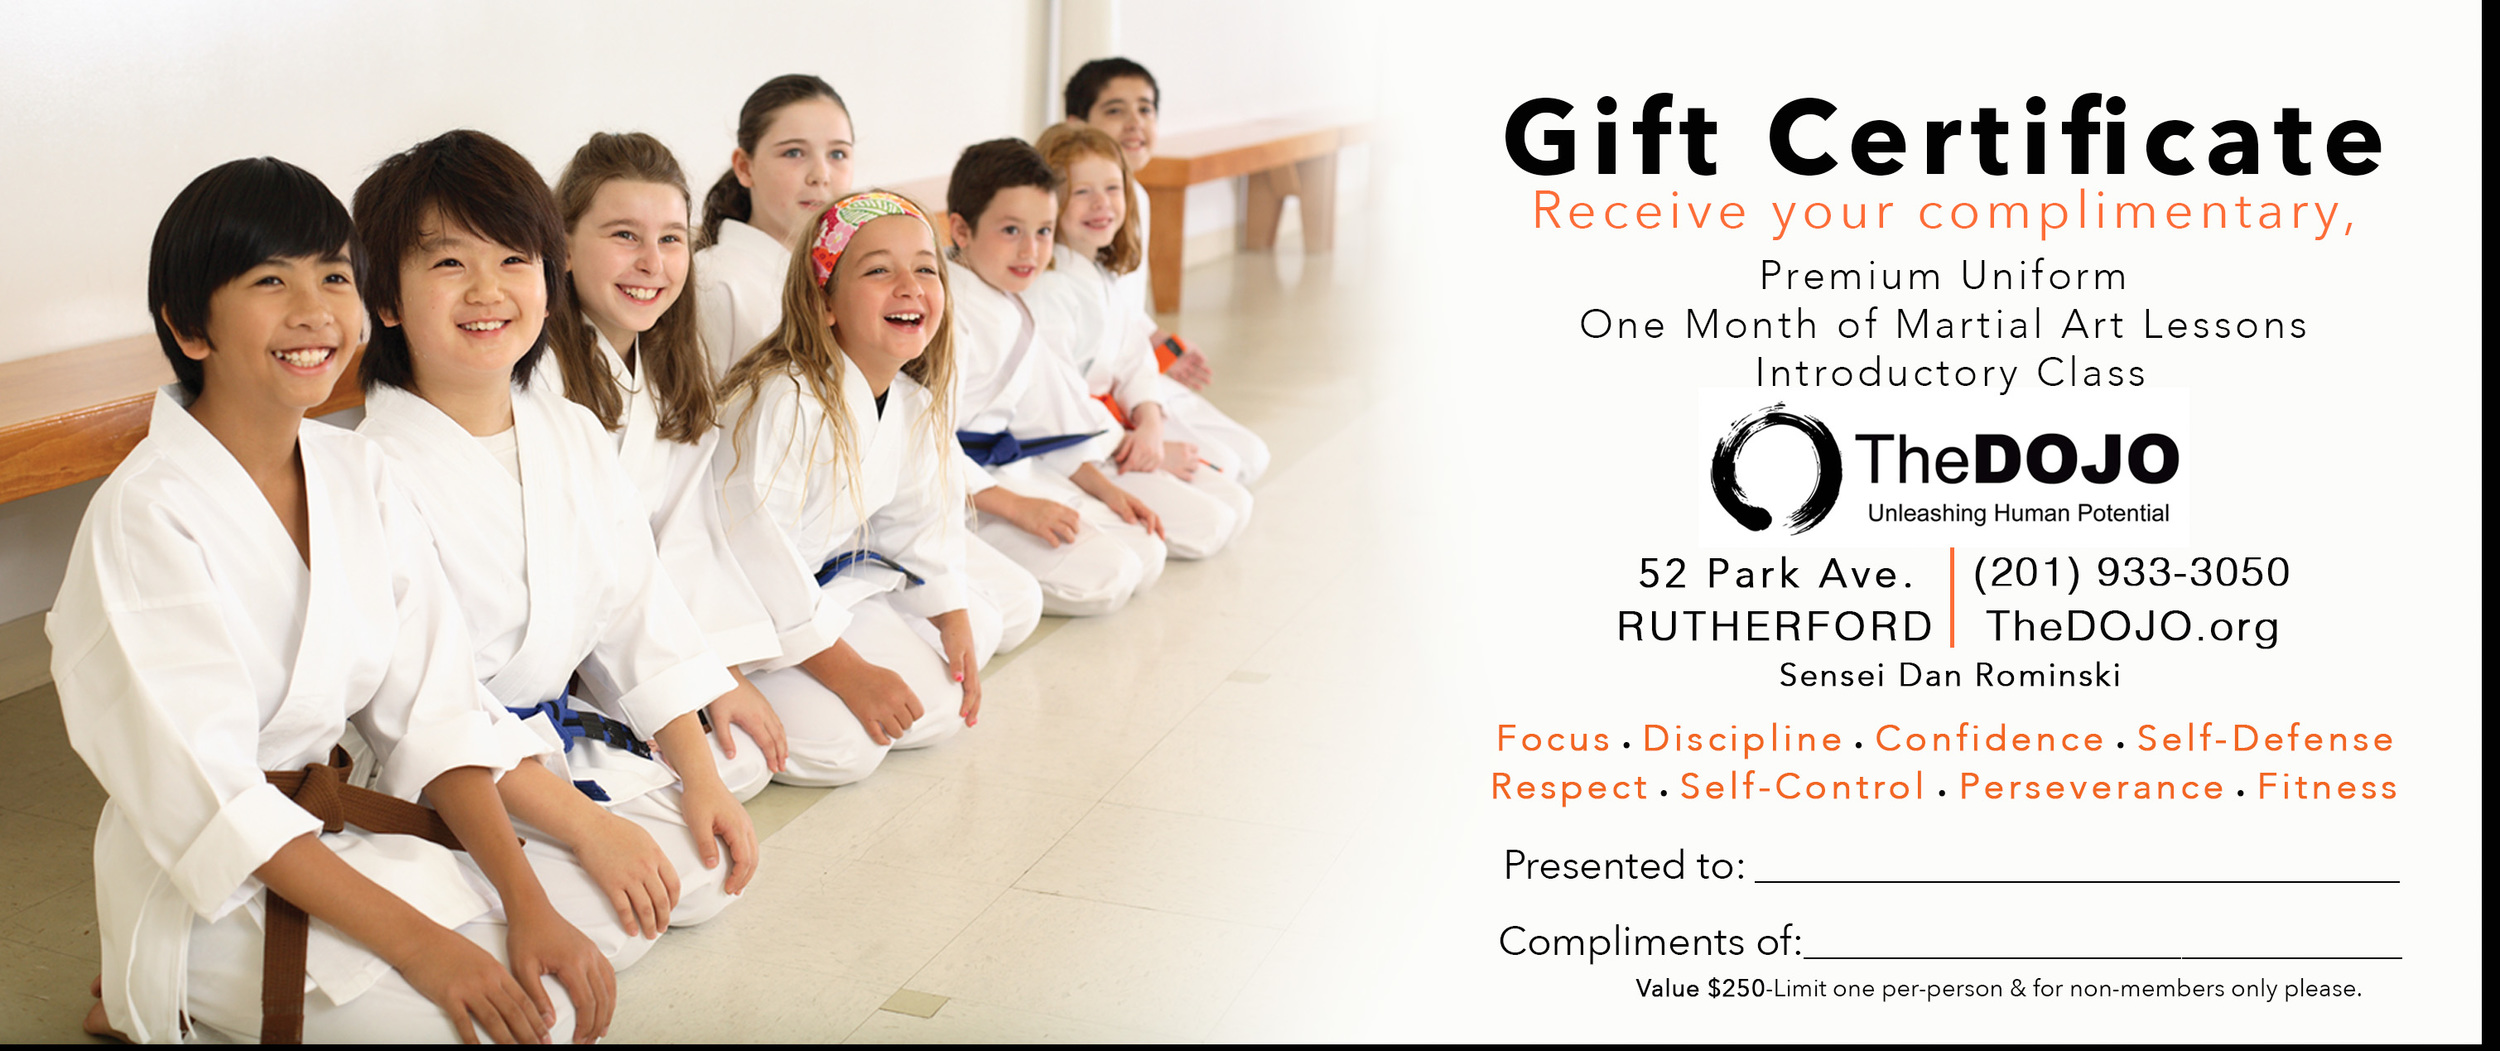 Download this gift certificate for a free month of lessons -  limit one per person & for new & non-members only please Click HERE